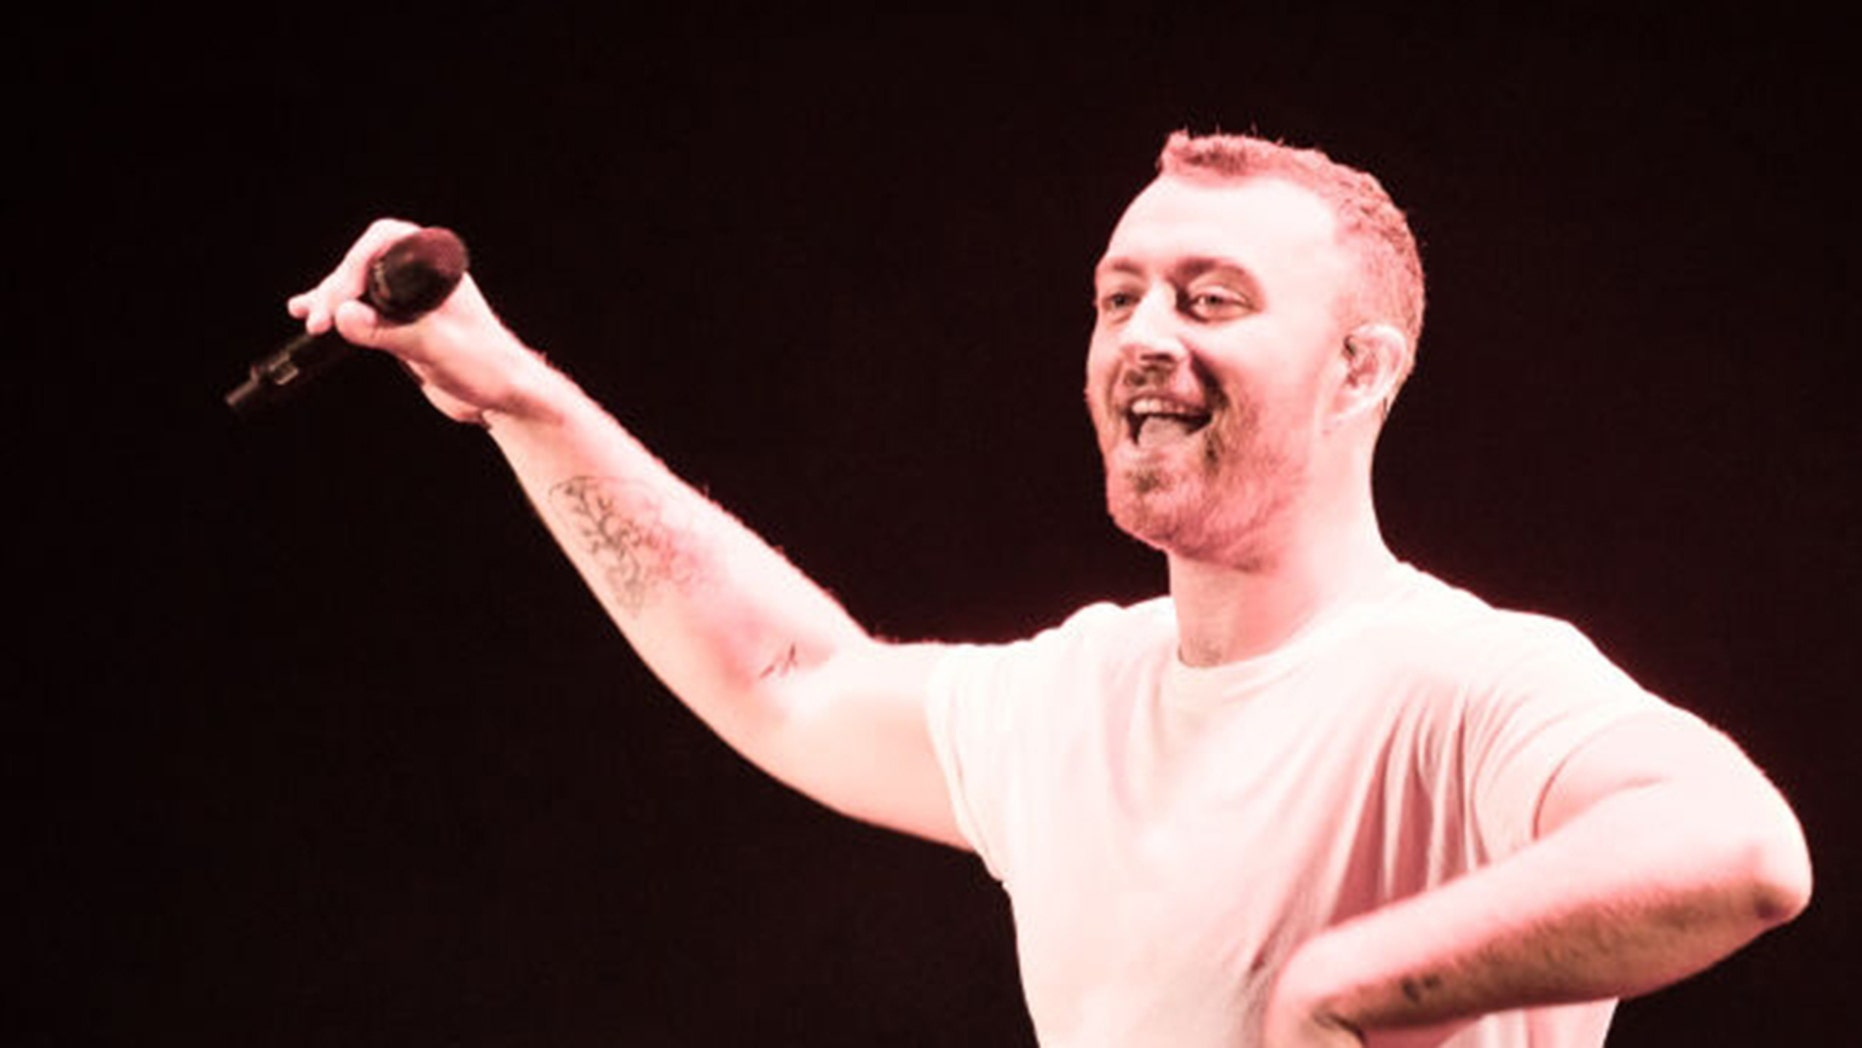 In a recently published interview on the night of the day, artist Sam Smith said he considers himself